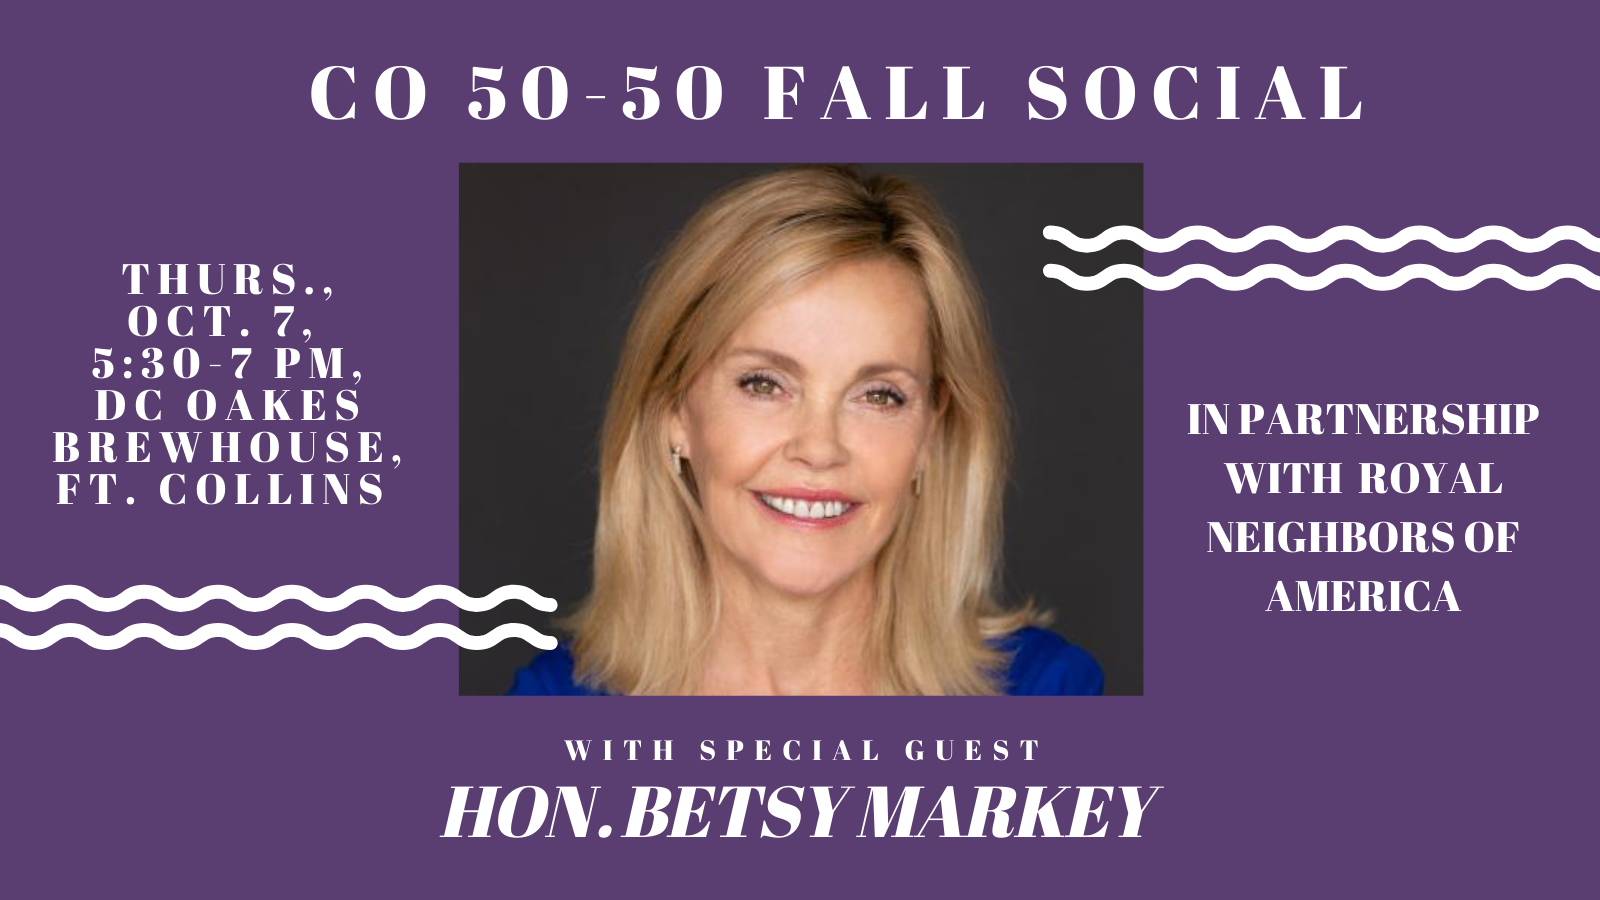 Hon. Betsy Markey will be the special guest at the CO 50-50 Fall Social